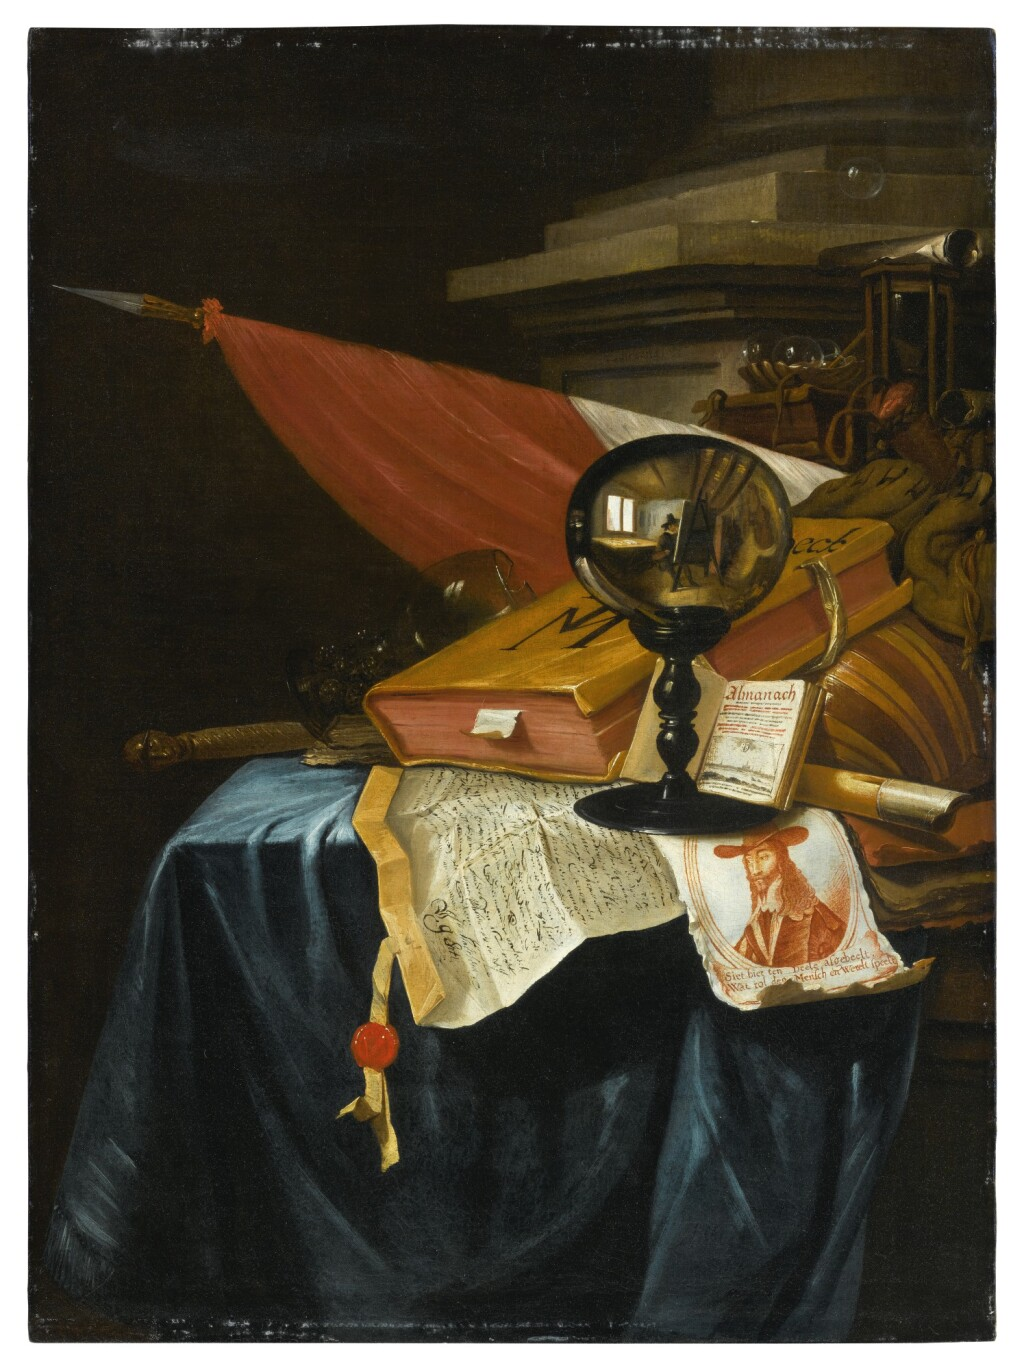 VINCENT LAURENSZ. VAN DER VINNE I   A VANITAS STILL LIFE WITH A CRYSTAL BALL REFLECTING AN IMAGE OF THE ARTIST AT HIS EASEL, A BOOK, A LUTE, A FLAG, A CHIPPED ROEMER, A FLUTE, A BATON, AN HOURGLASS, AN OPEN BOOK SHOWING A VIEW OF ANTWERP, AN ENGRAVED PORT